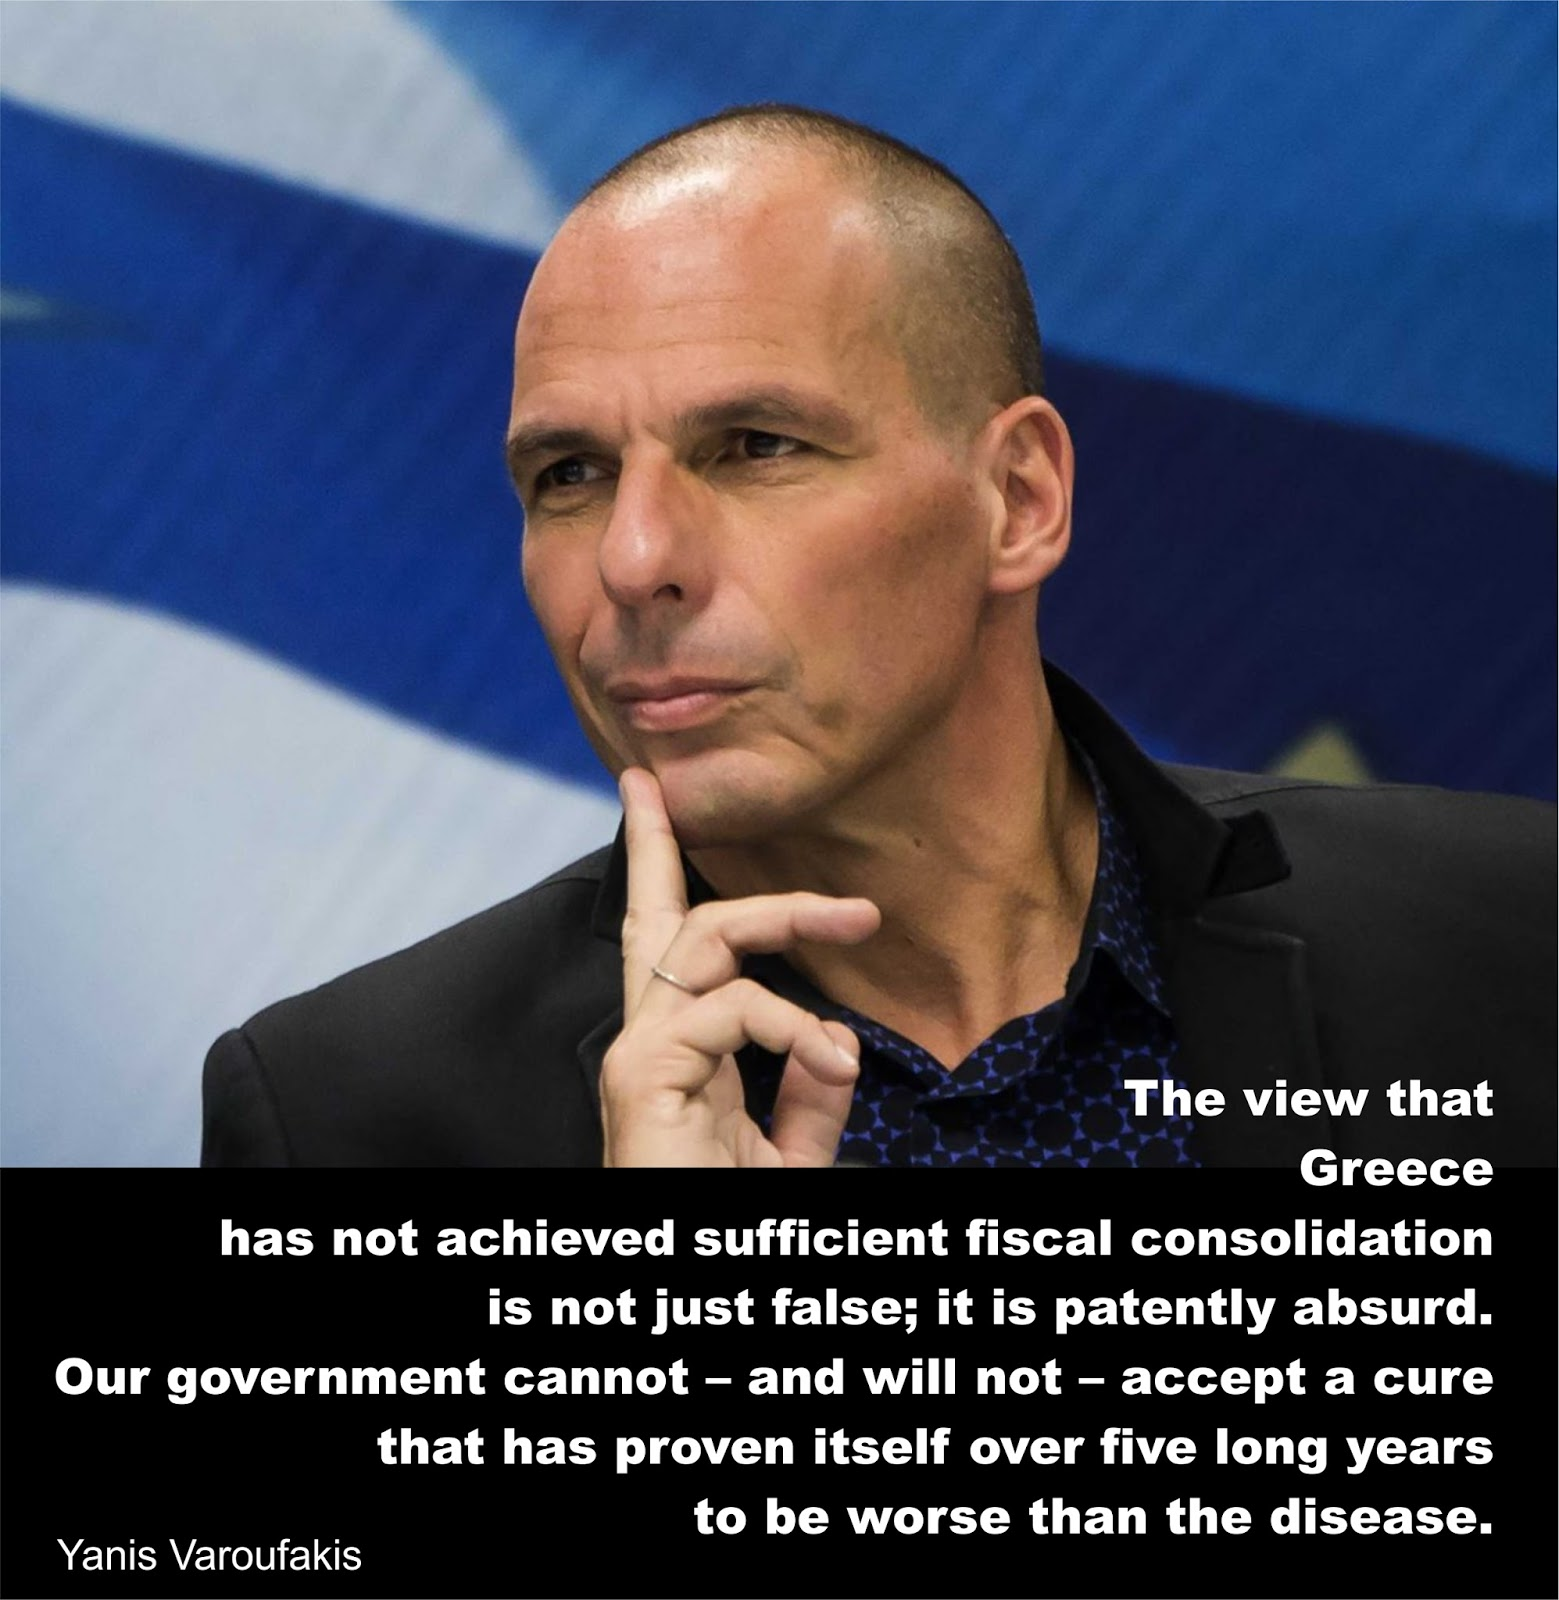 http://www.project-syndicate.org/commentary/greece-government-reforms-by-yanis-varoufakis-2015-05